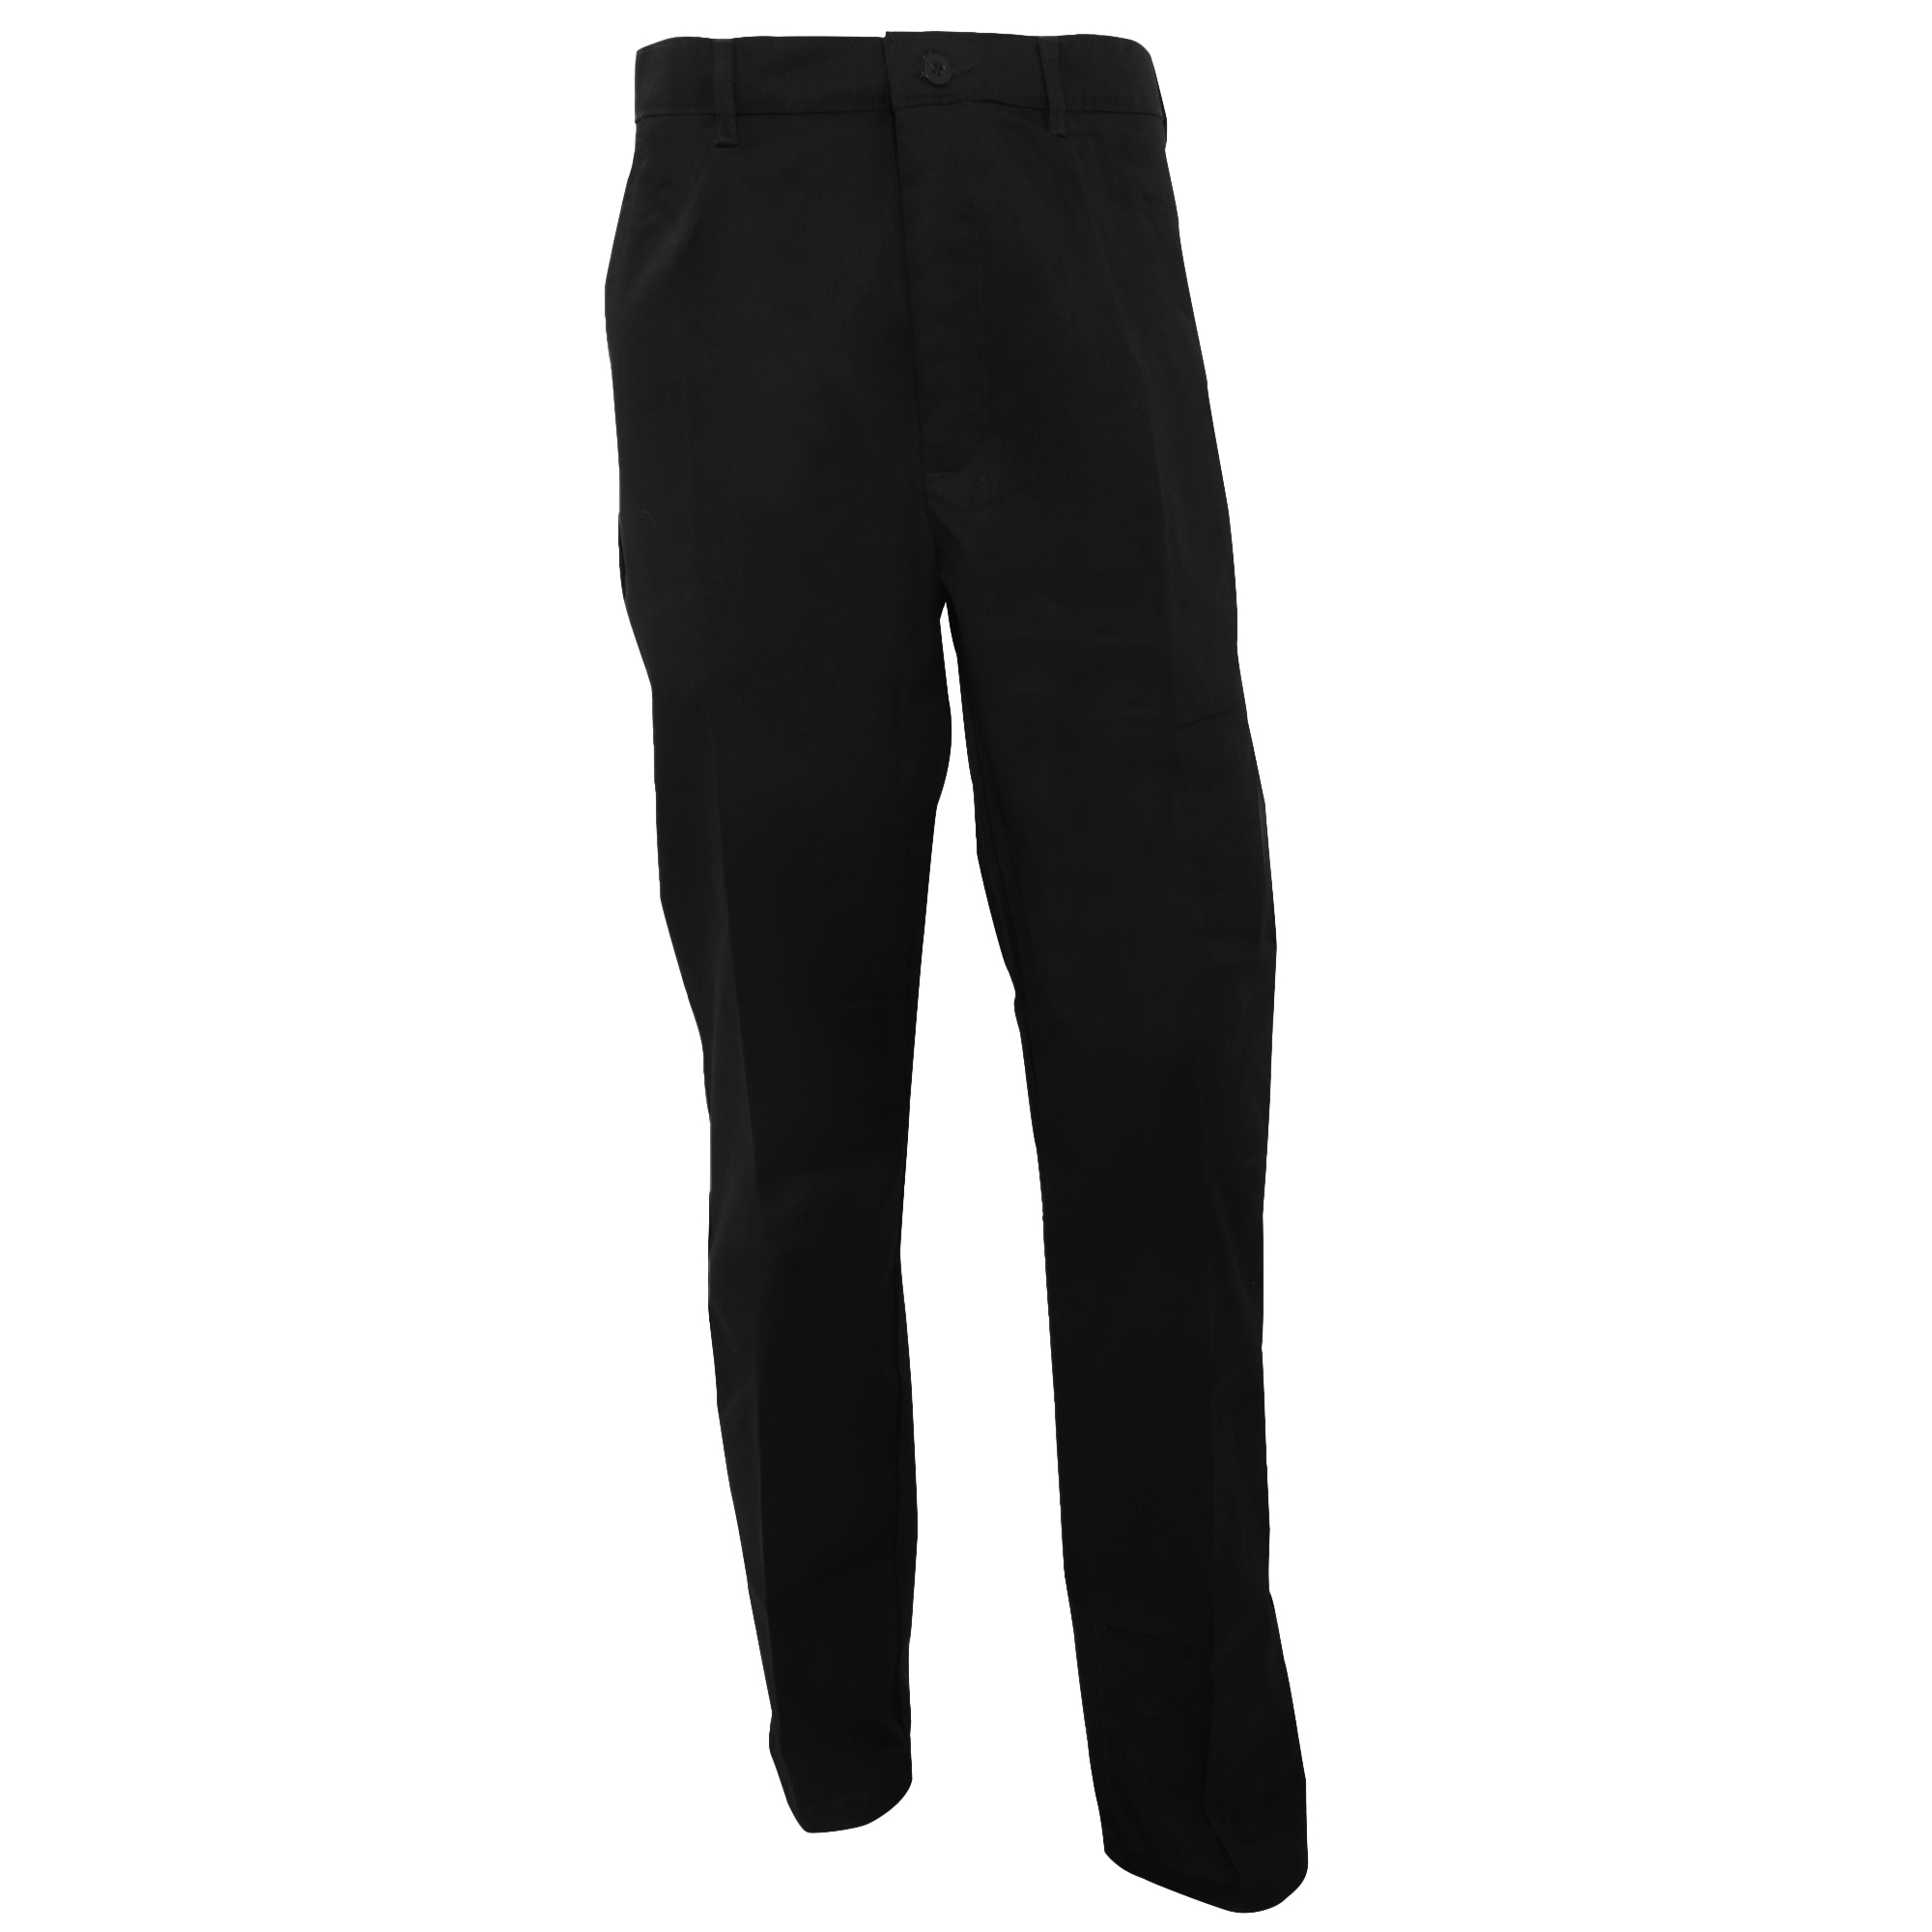 RTY Workwear Mens Pleated Trousers (48T) (Black)